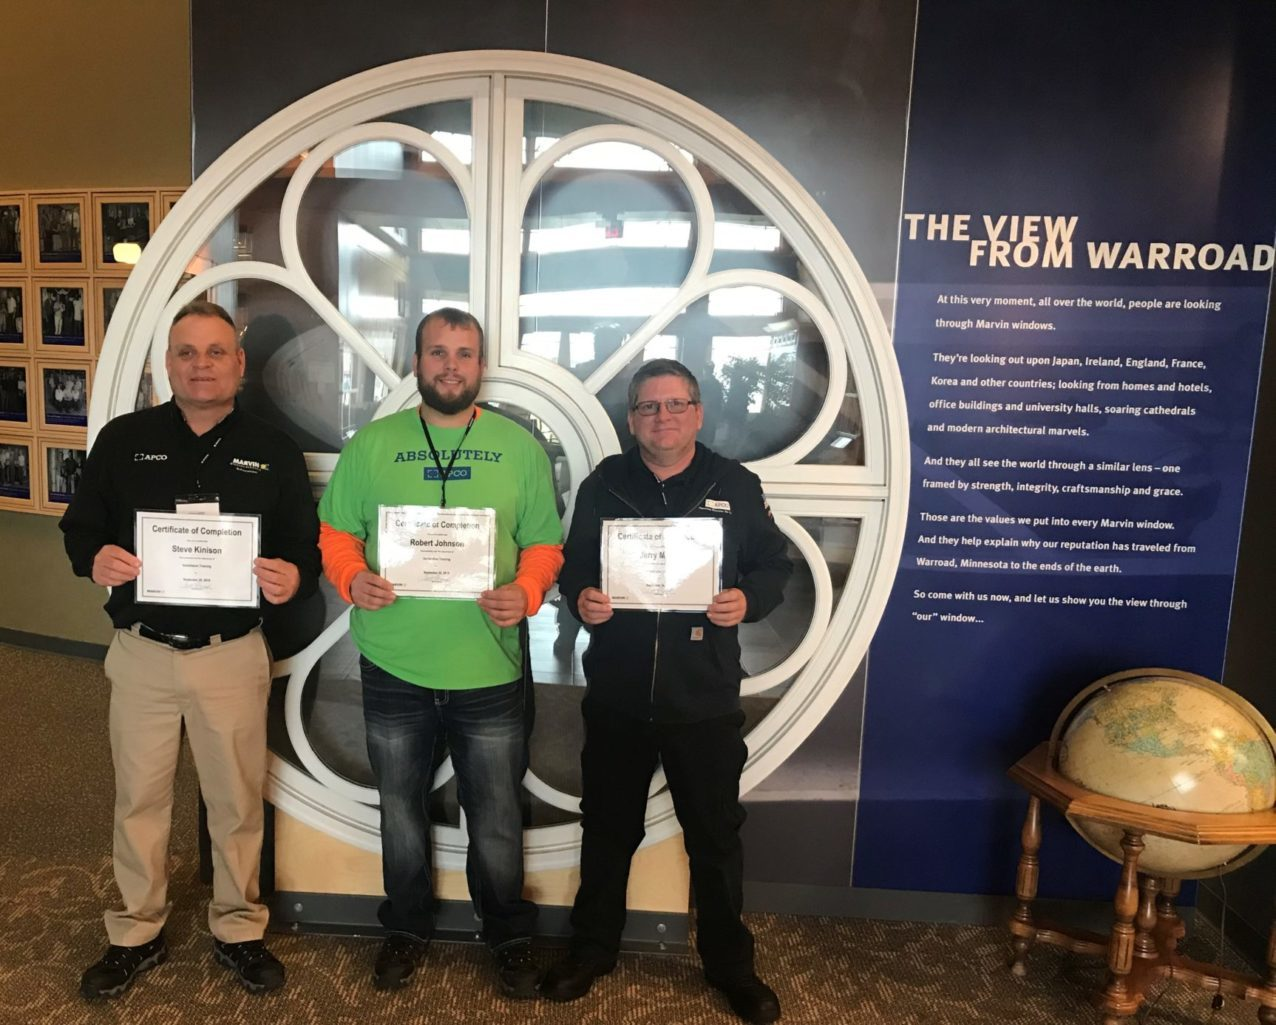 Two more APCO installers and an APCO production manager become officially certified in window and door installation after an all-expense-paid trip to Warroad, Minnesota.